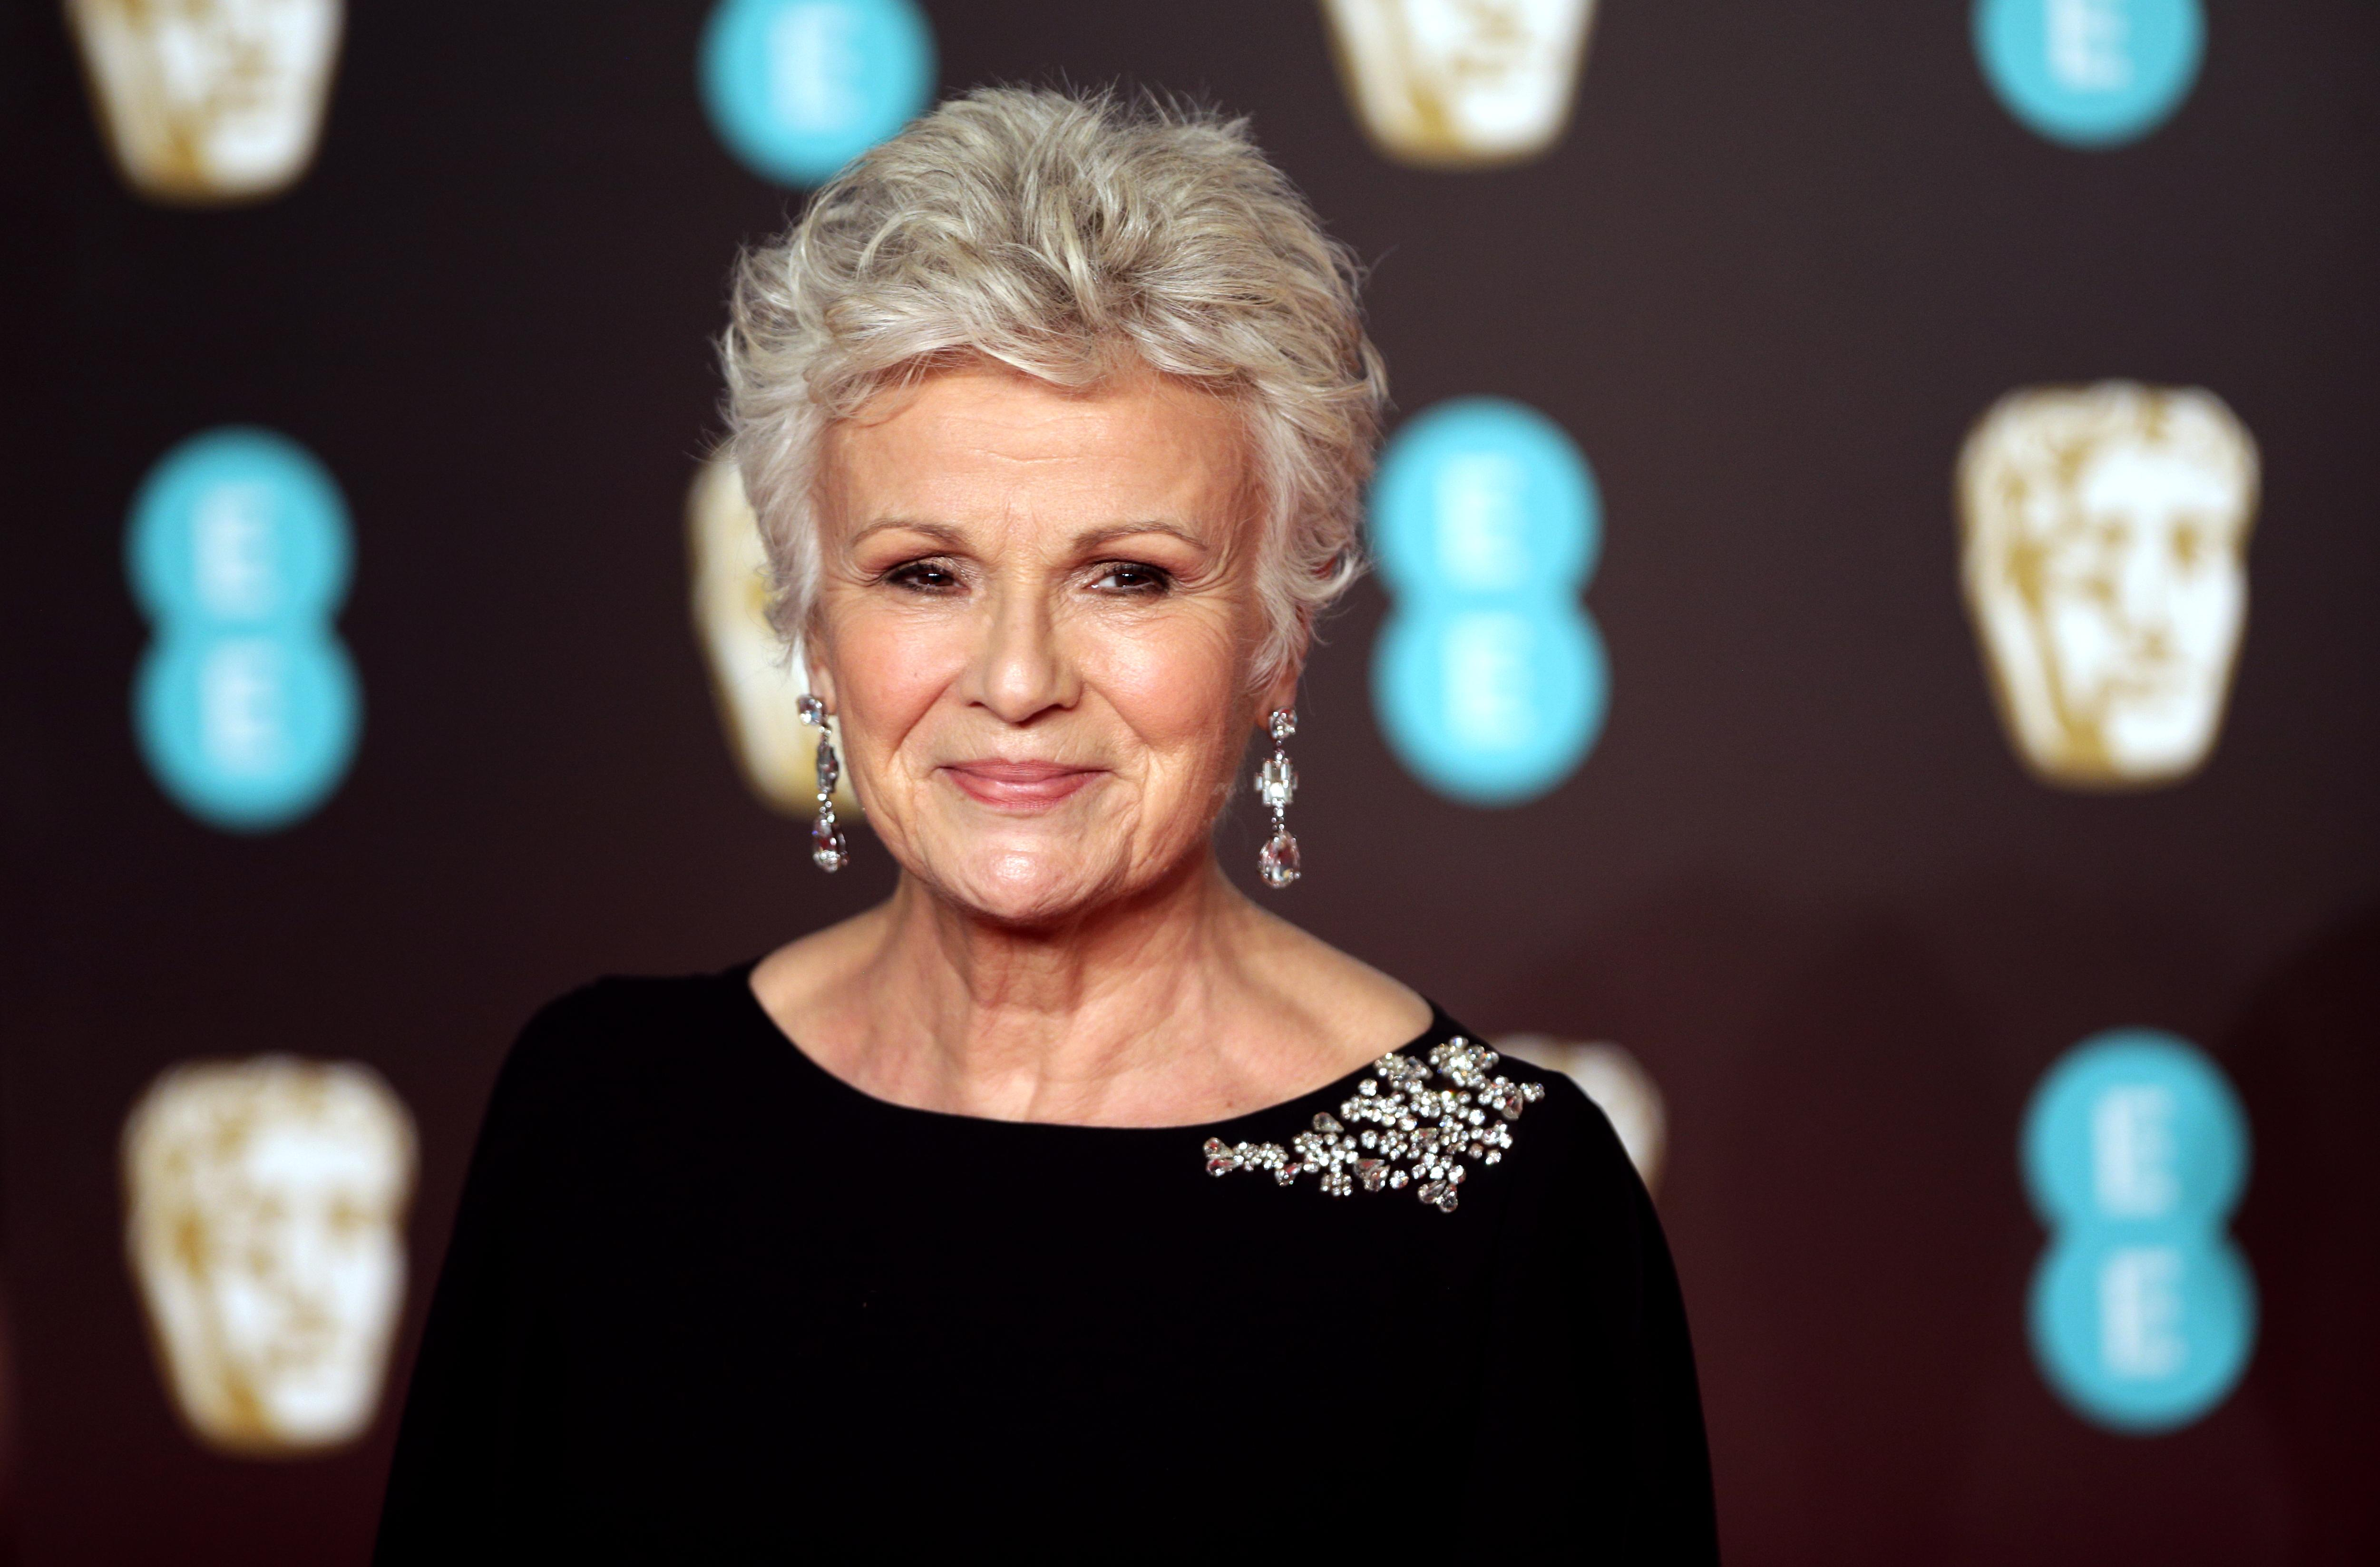 Dame Julie Walters opens up about overcoming bowel cancer - what is the disease?